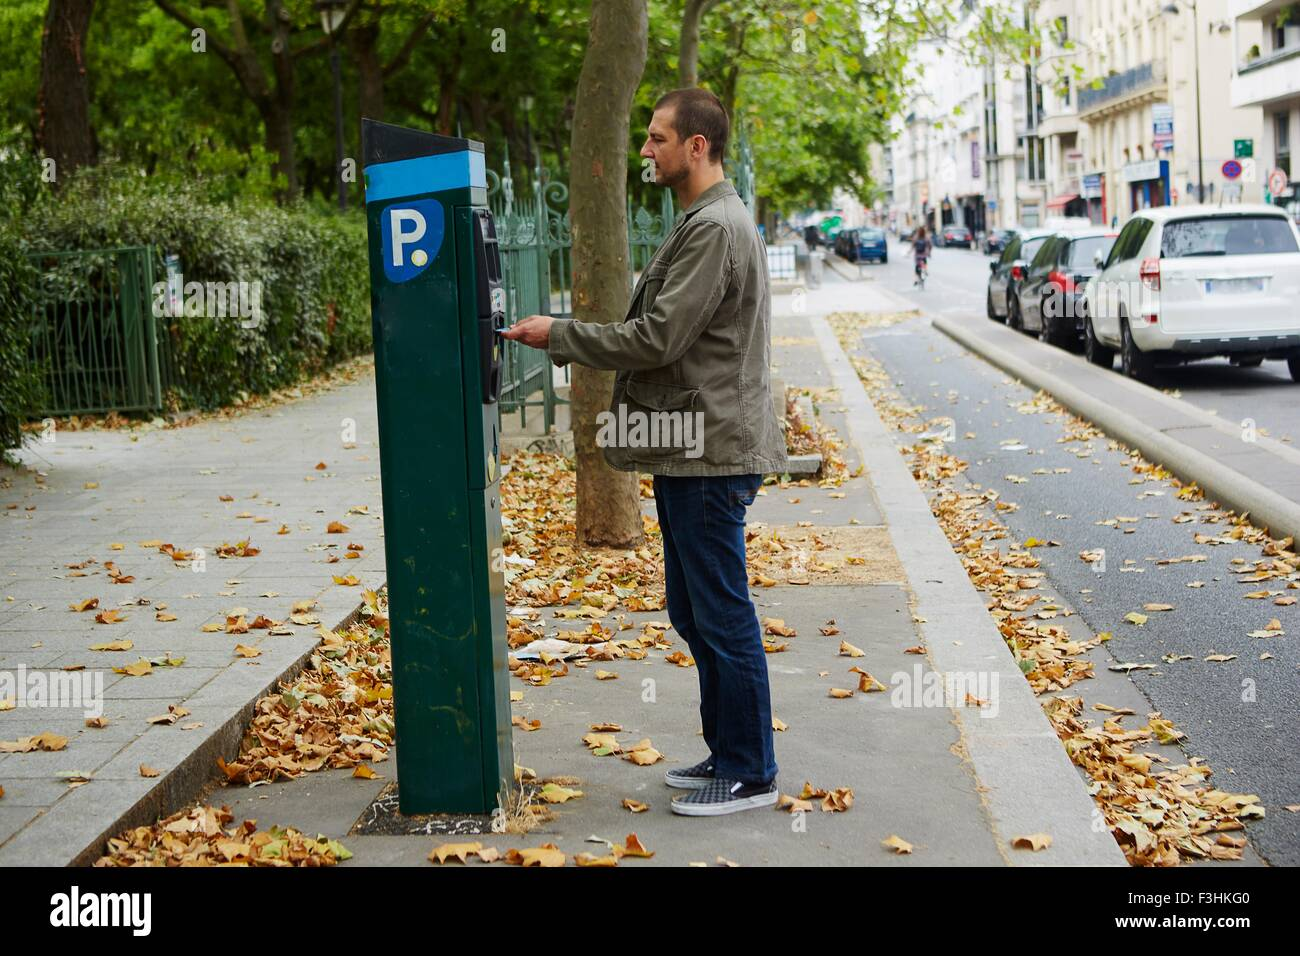 Mid adult man using parking meter in street - Stock Image